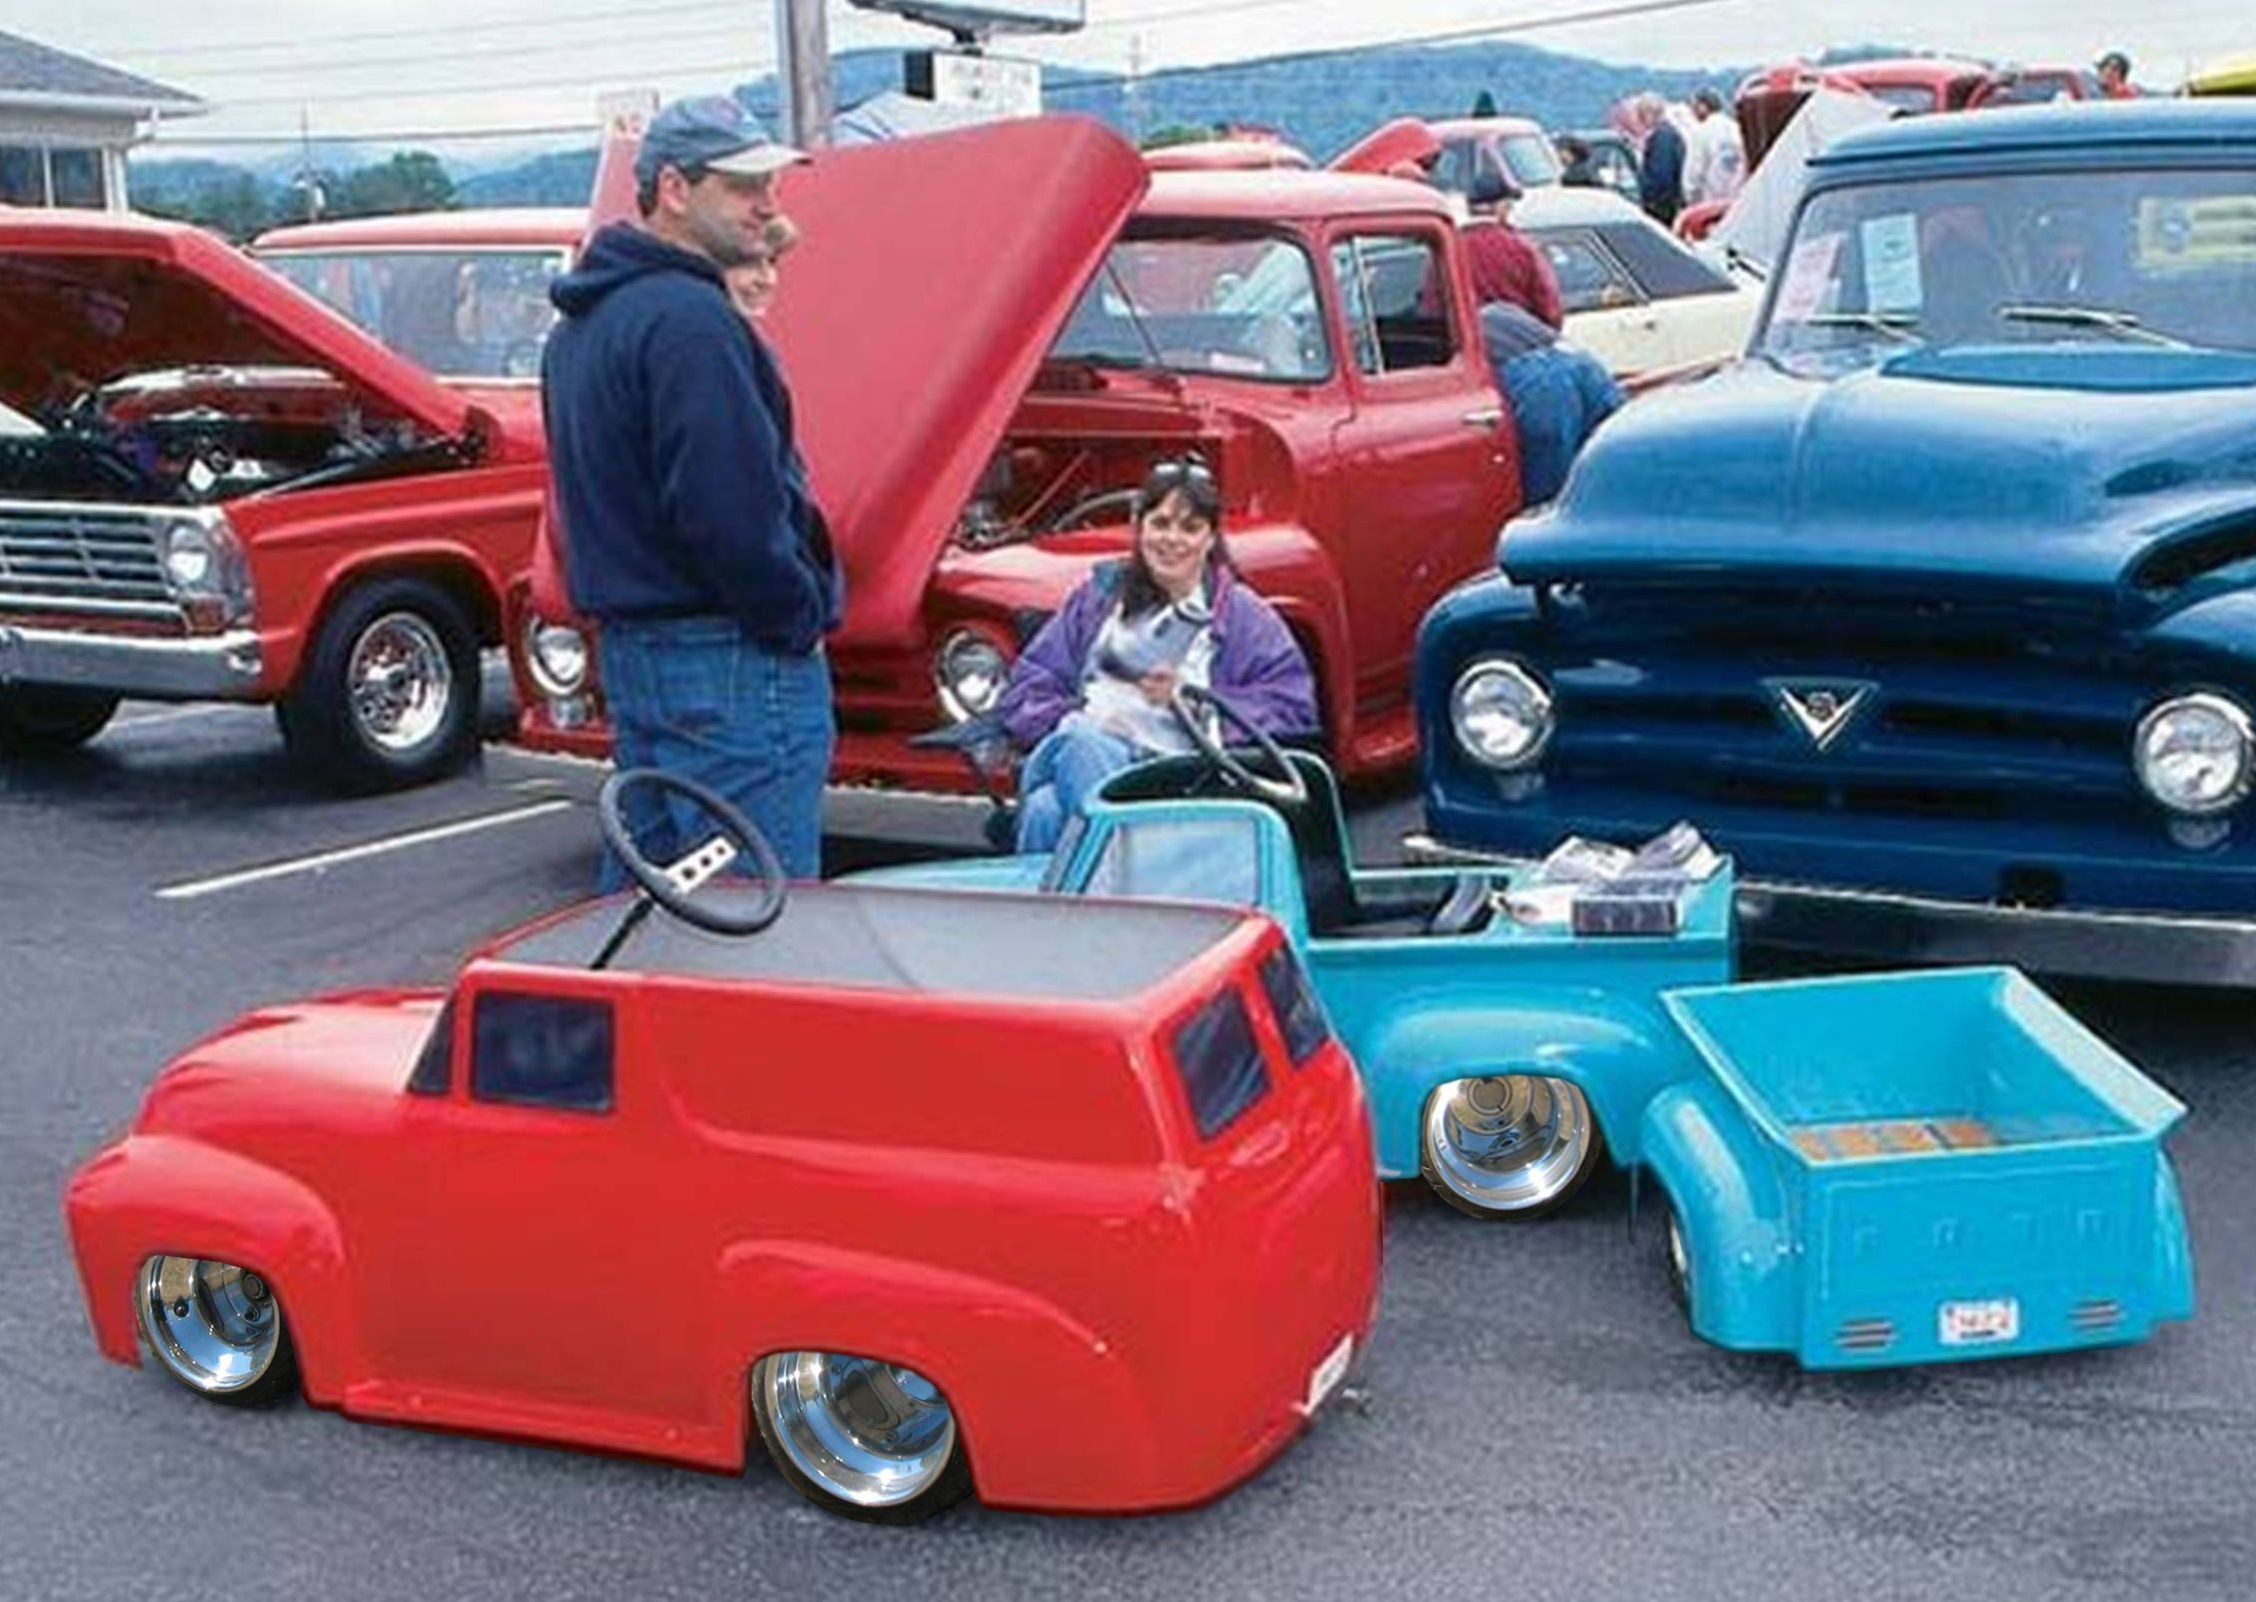 1956 Ford F100 Panel Go Kart The Material Which I Can Produce Is Suitable For Different Flat Objects E G Cogs C Pedal Cars Vintage Pedal Cars Toy Pedal Cars